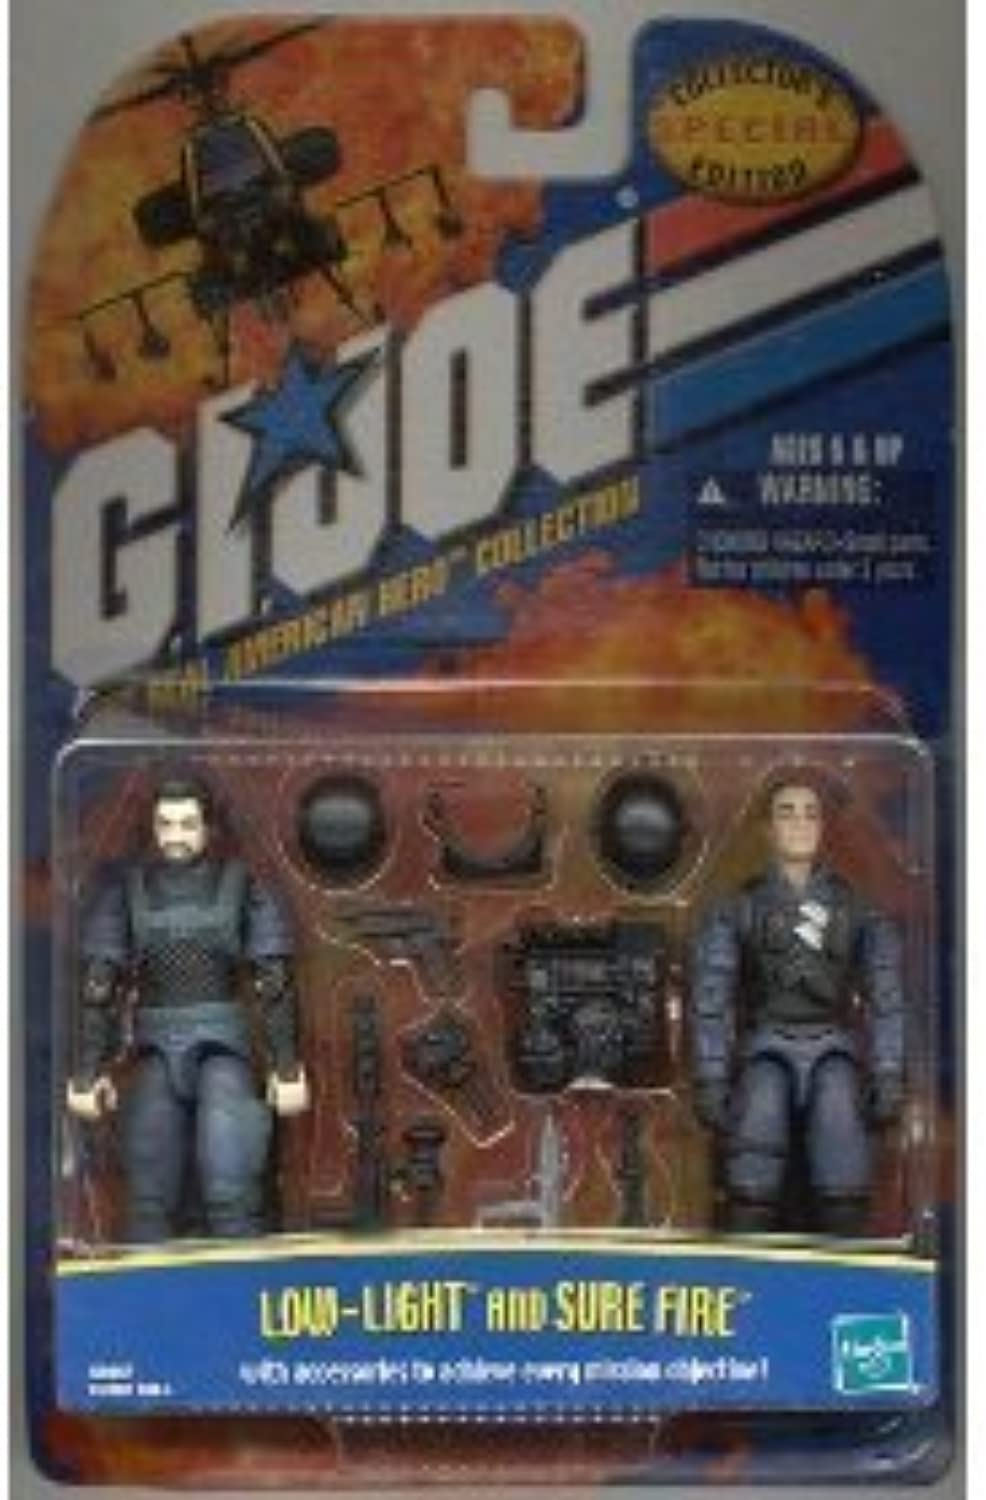 Galactic Heroes Star Wars Year 2007 Series 2 Pack 2 Inch Tall Mini Figure - DUROS with Blaster and GARINDAN with Blaster